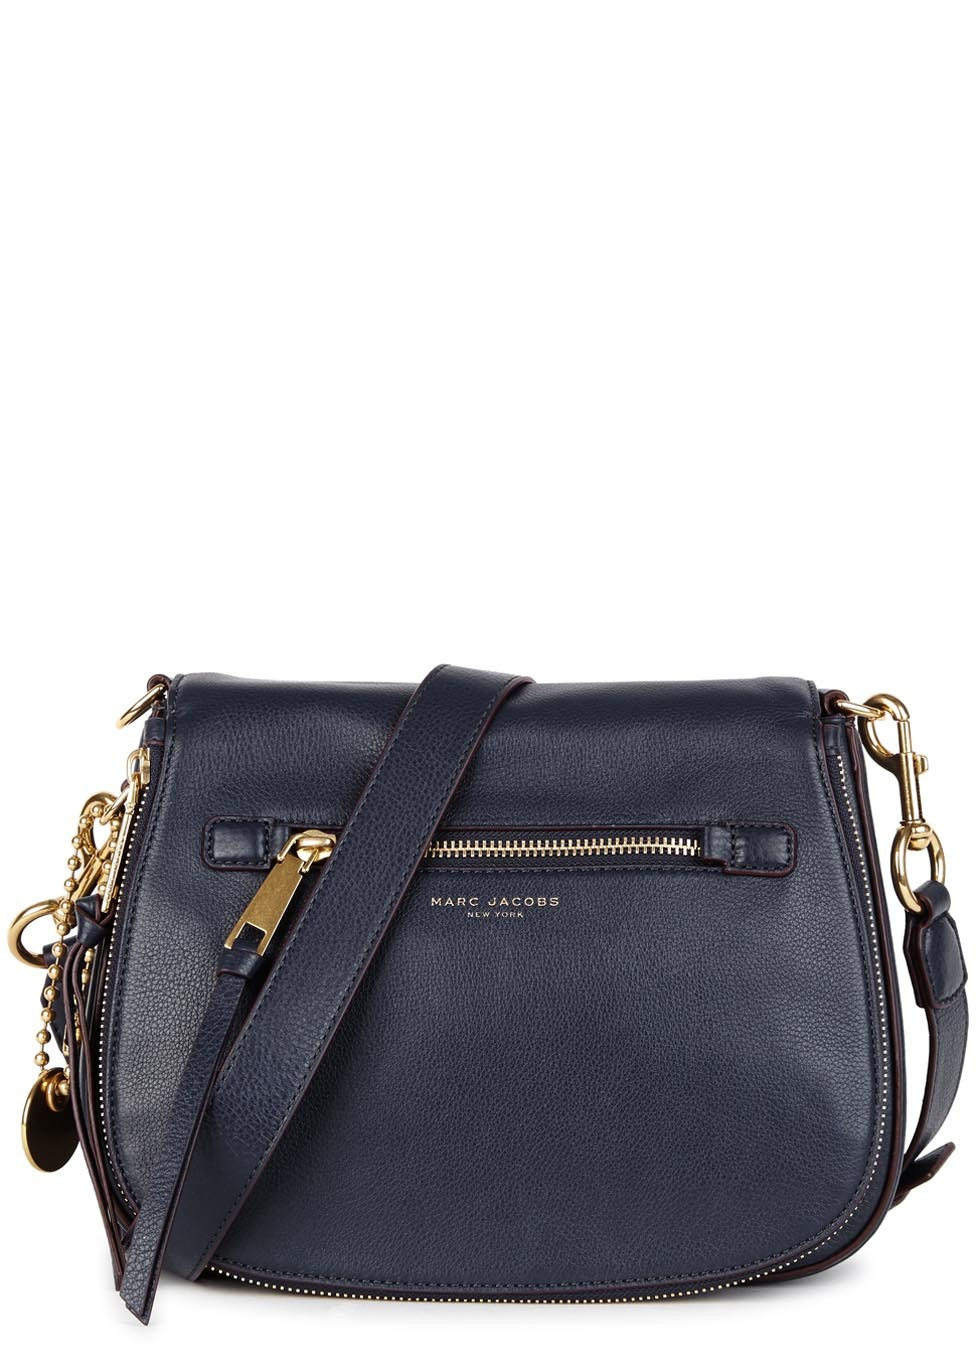 Recruit Navy Leather Shoulder Bag - predominant colour: navy; occasions: casual, creative work; type of pattern: small; style: saddle; length: across body/long; size: small; material: leather; pattern: plain; finish: plain; season: s/s 2016; wardrobe: basic